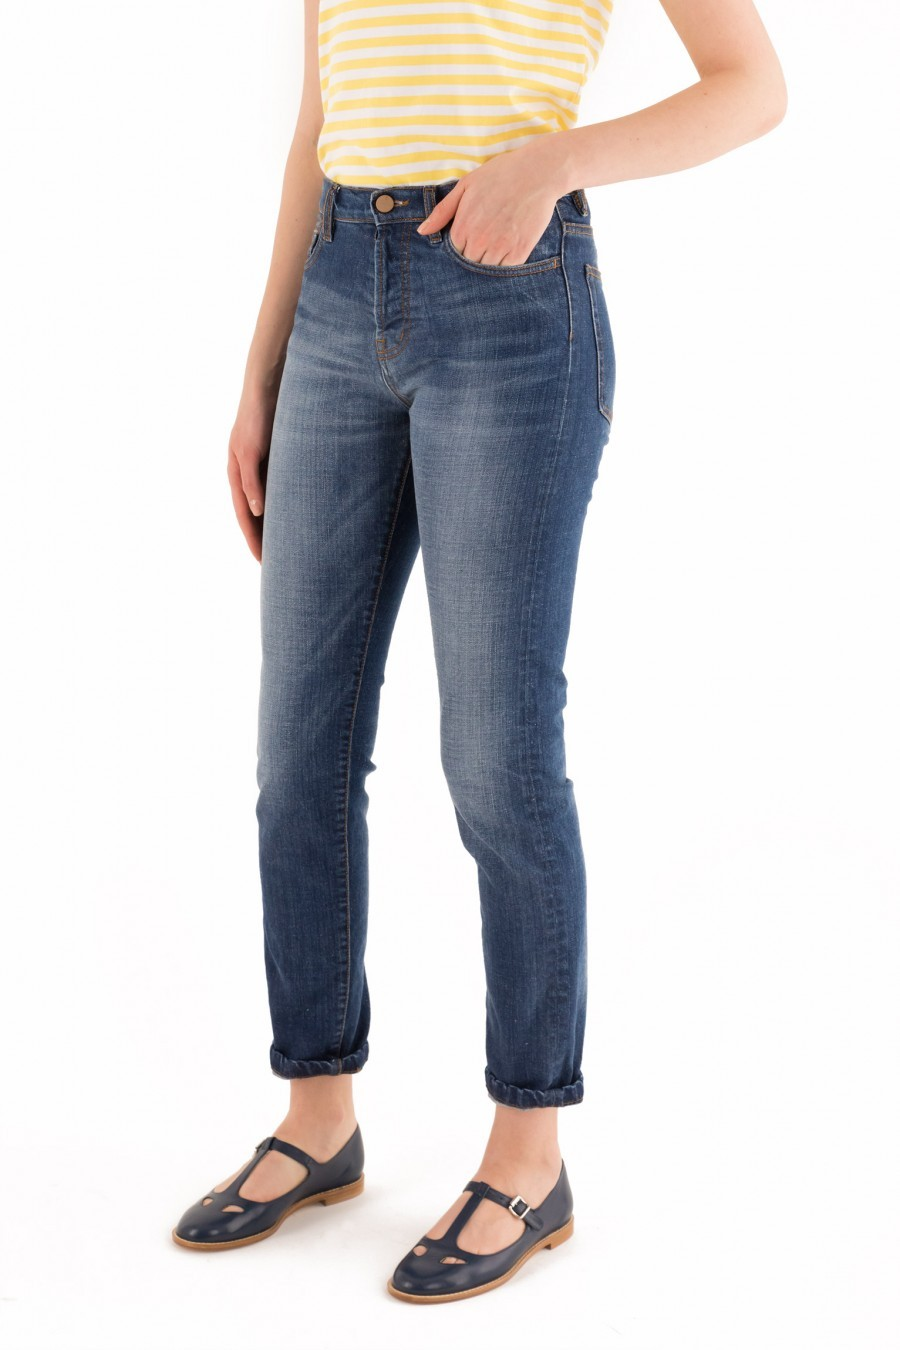 Pantalone 5 tasche denim wedgie fit Lazzari